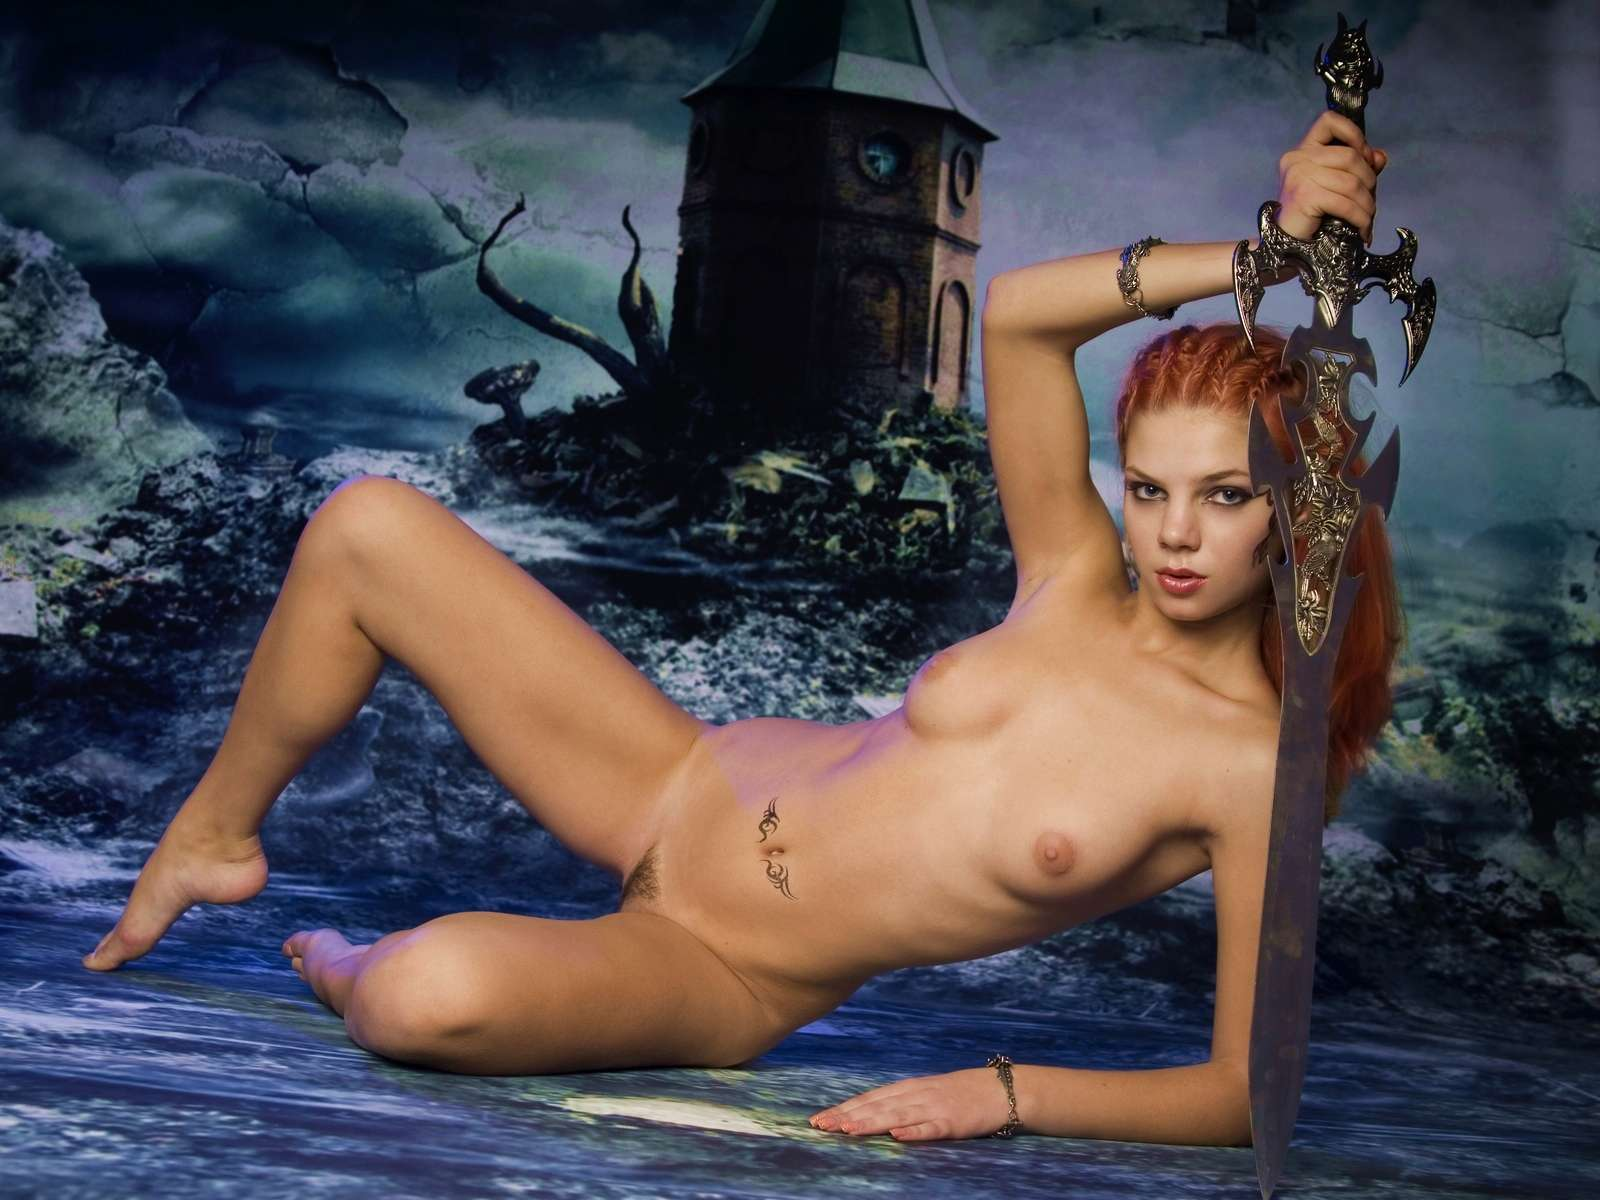 Attractive Naked Women Free Download Png